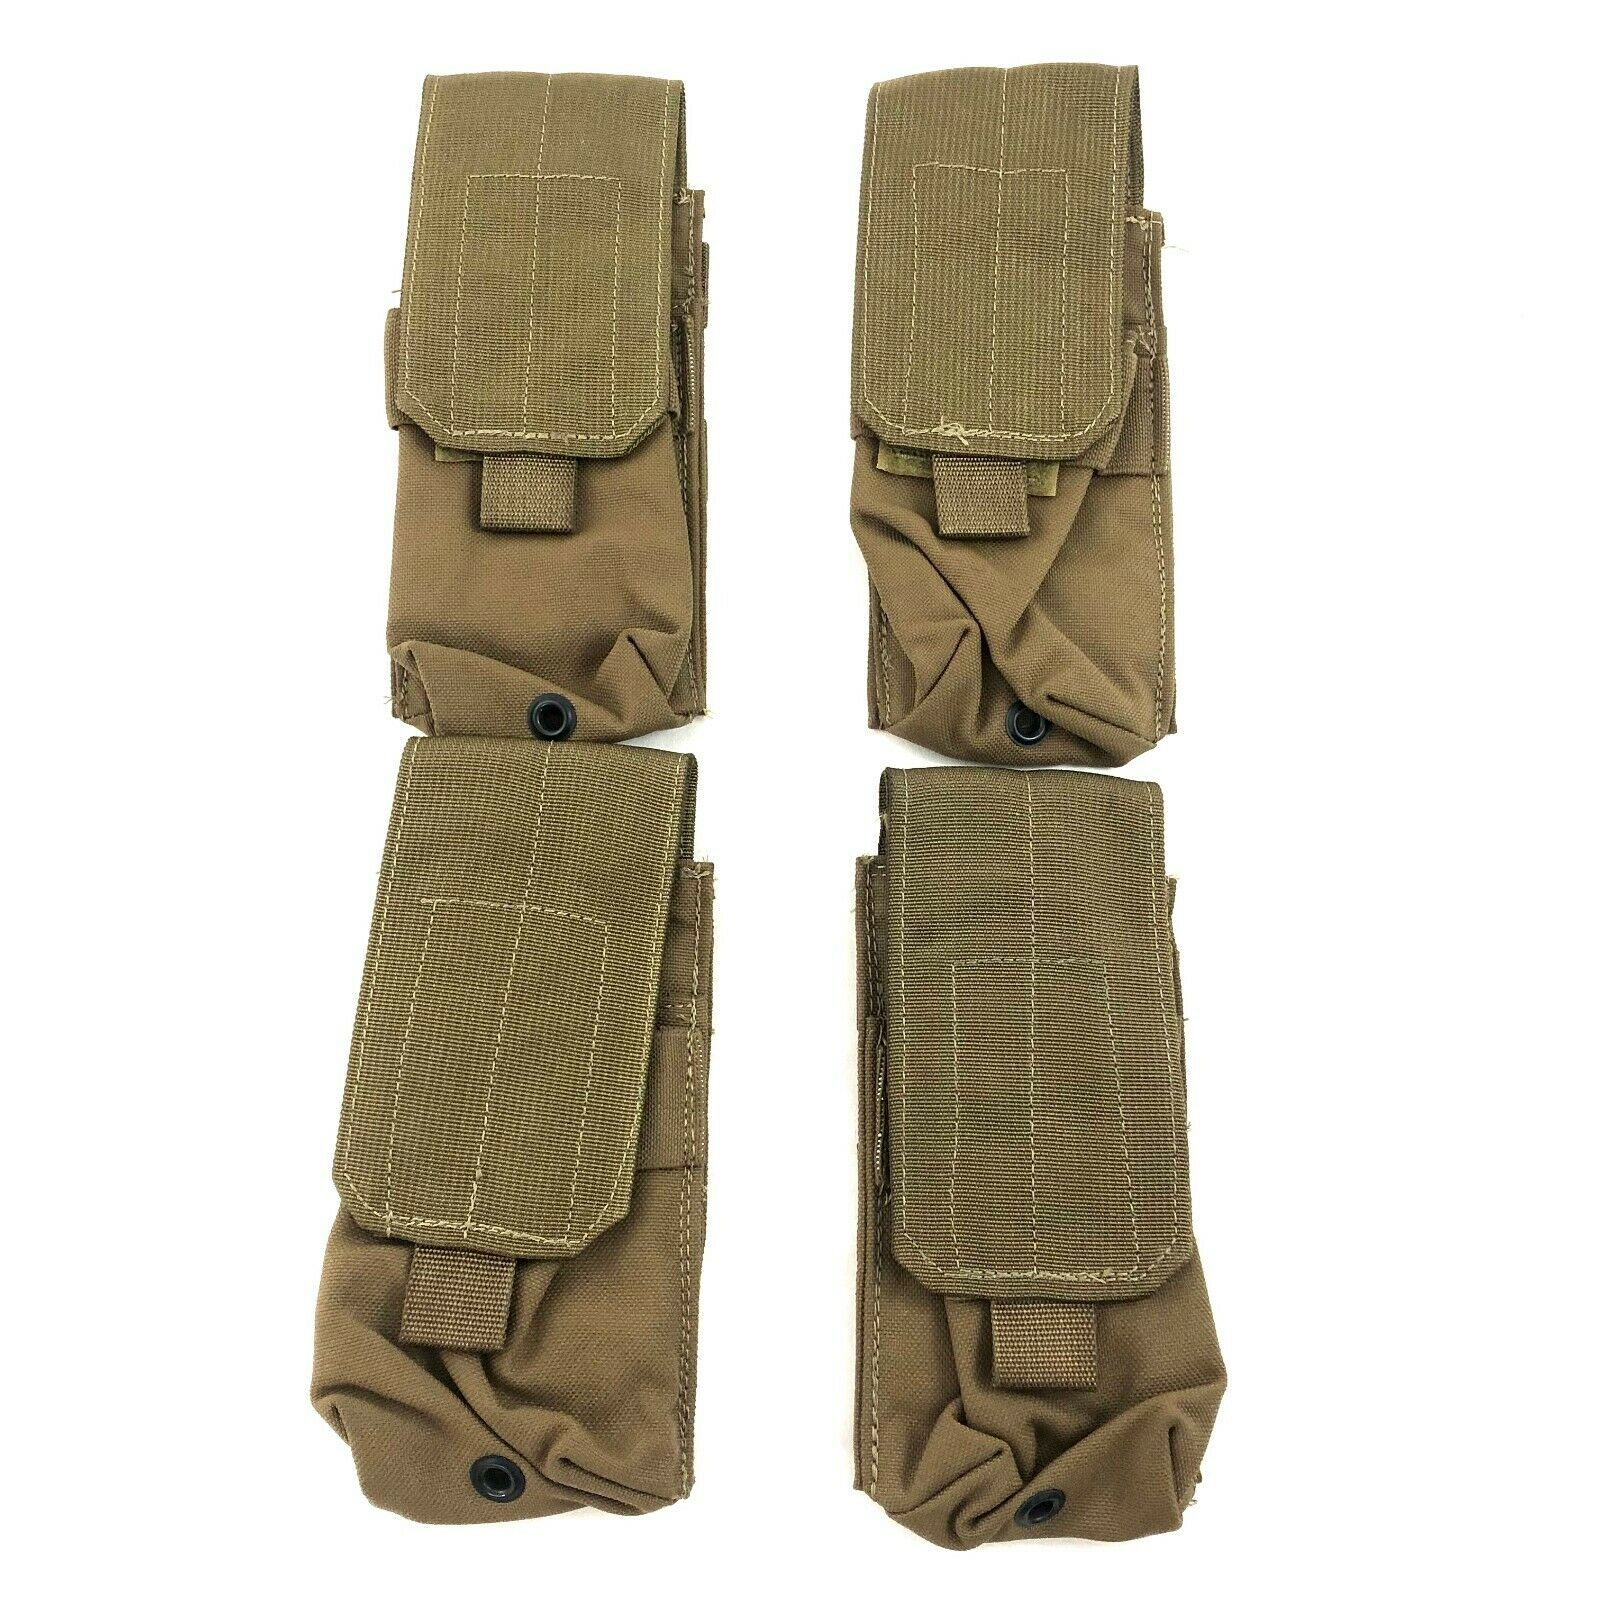 Resource Center Double Mag Pouch, Military Coyote, USMC Maga